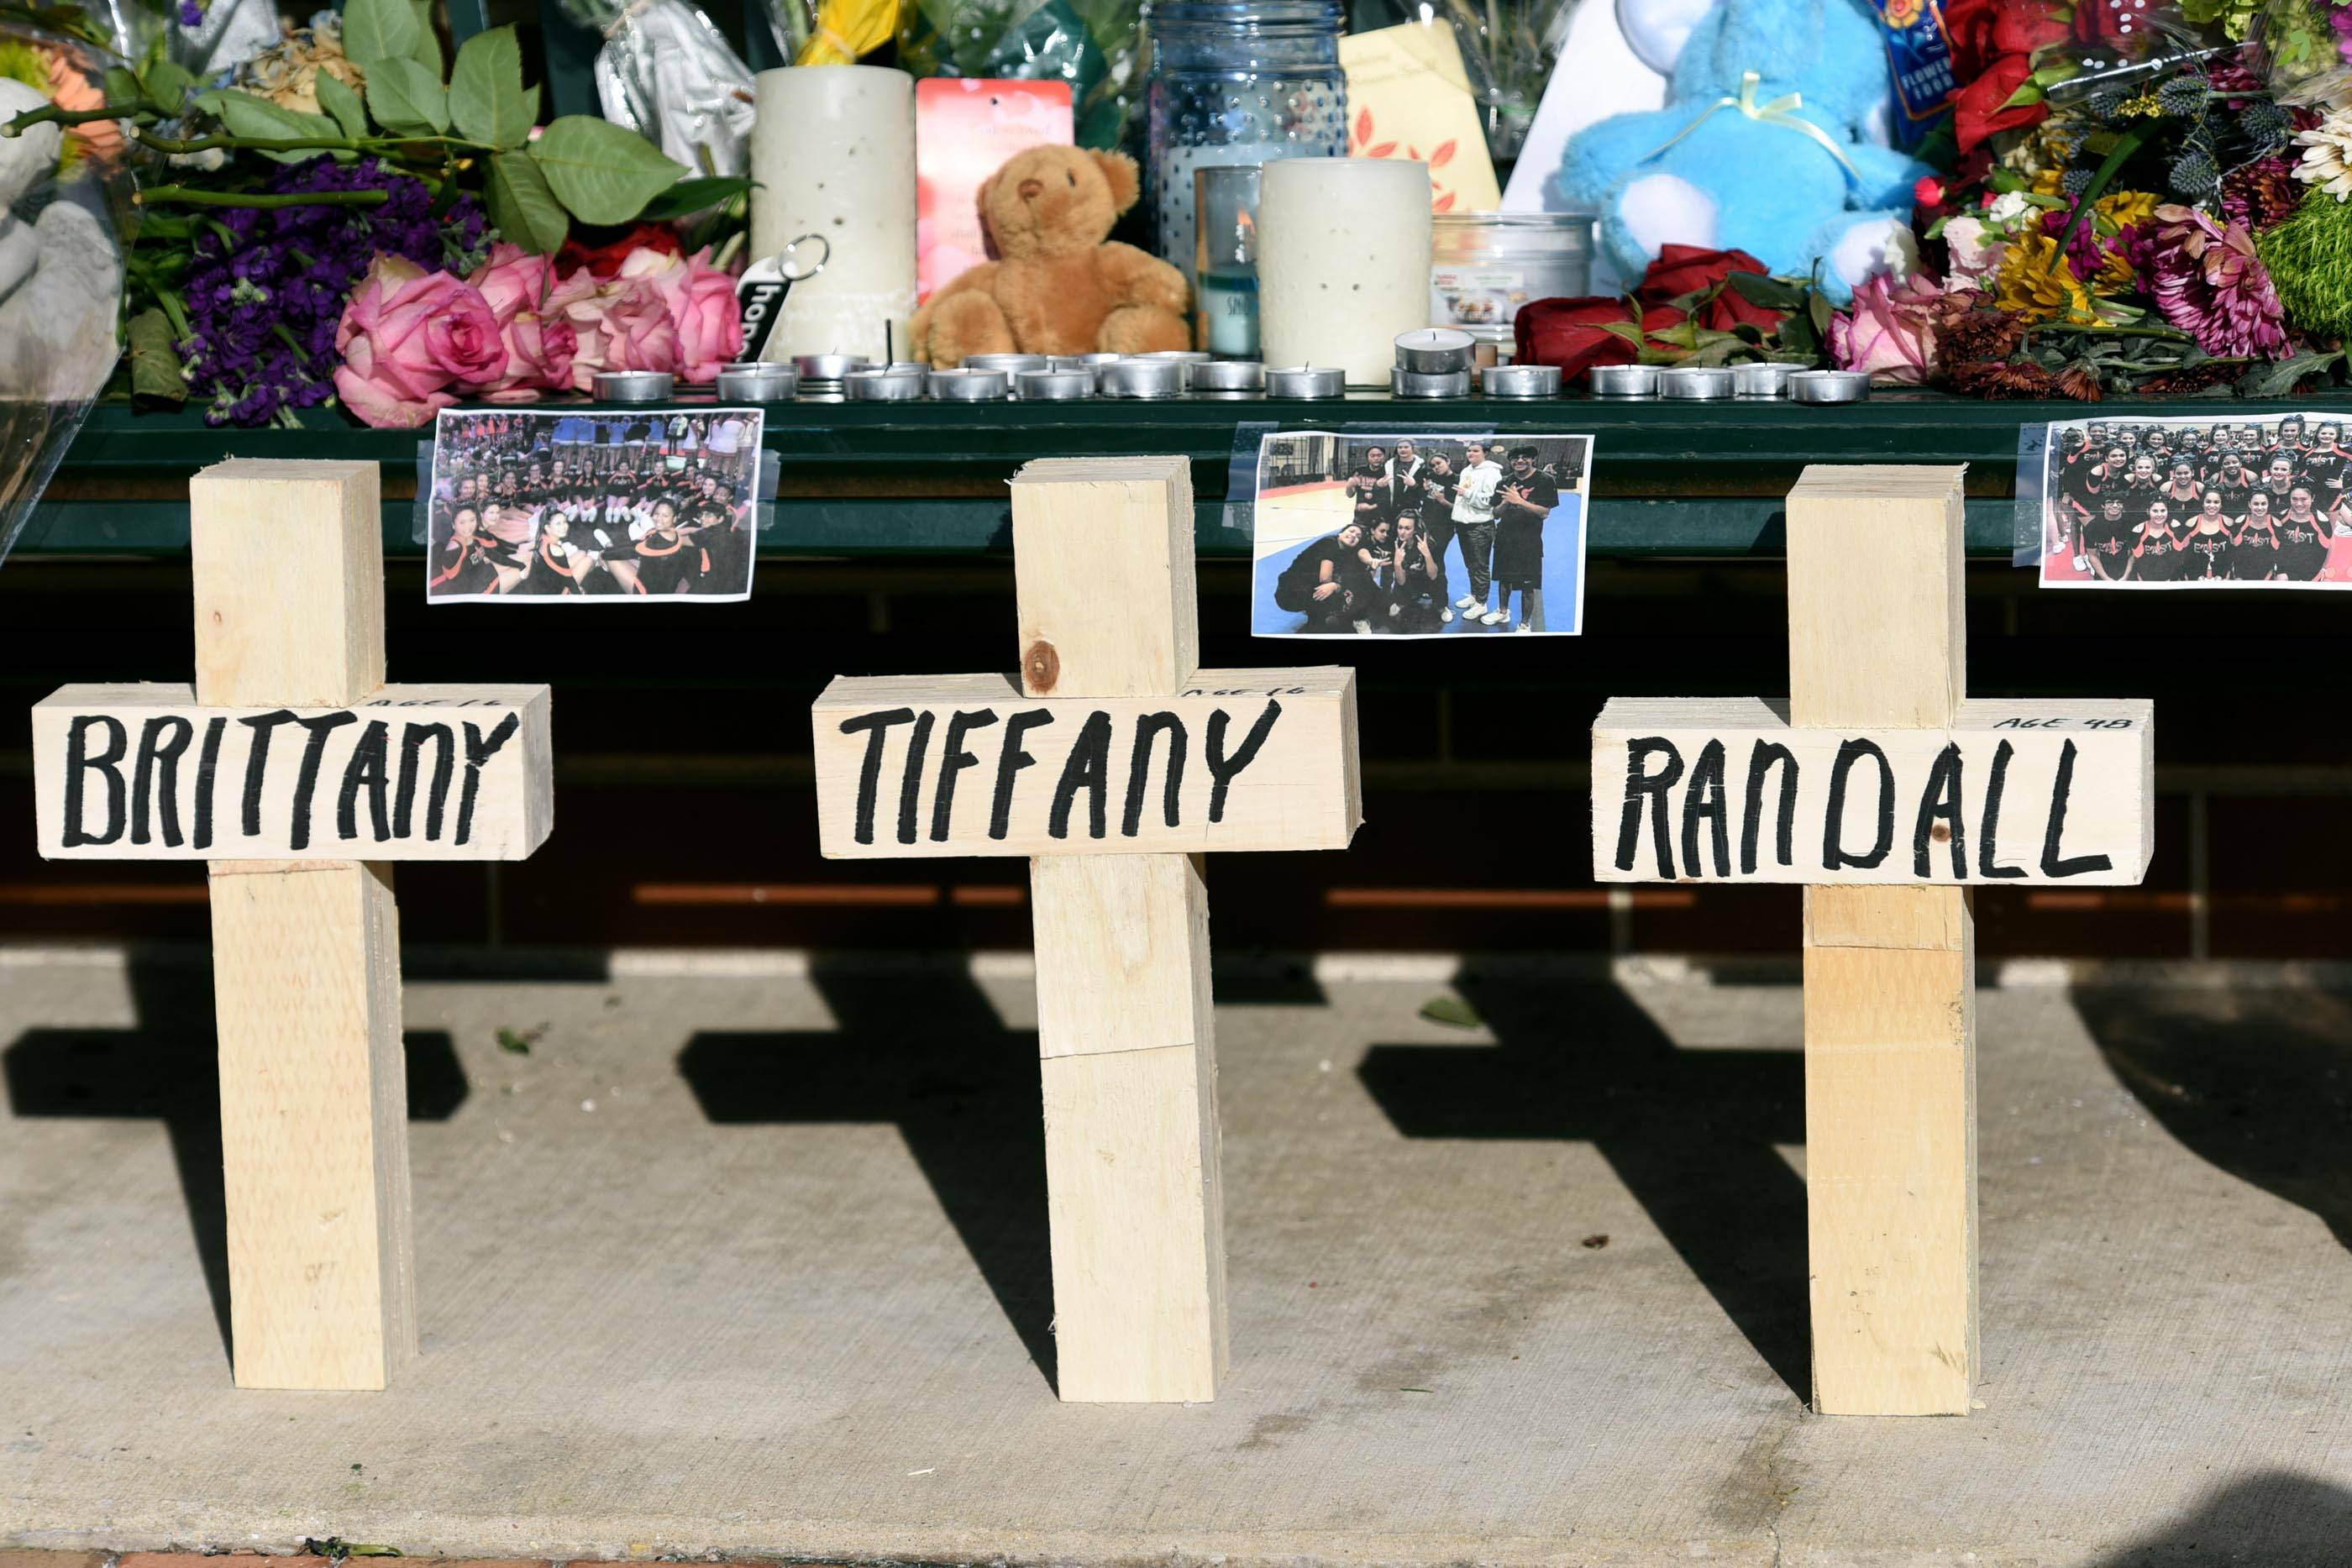 Crosses with the victim's names and photos were added to the memorial near the scene of a quadruple shooting in downtown St. Charles.